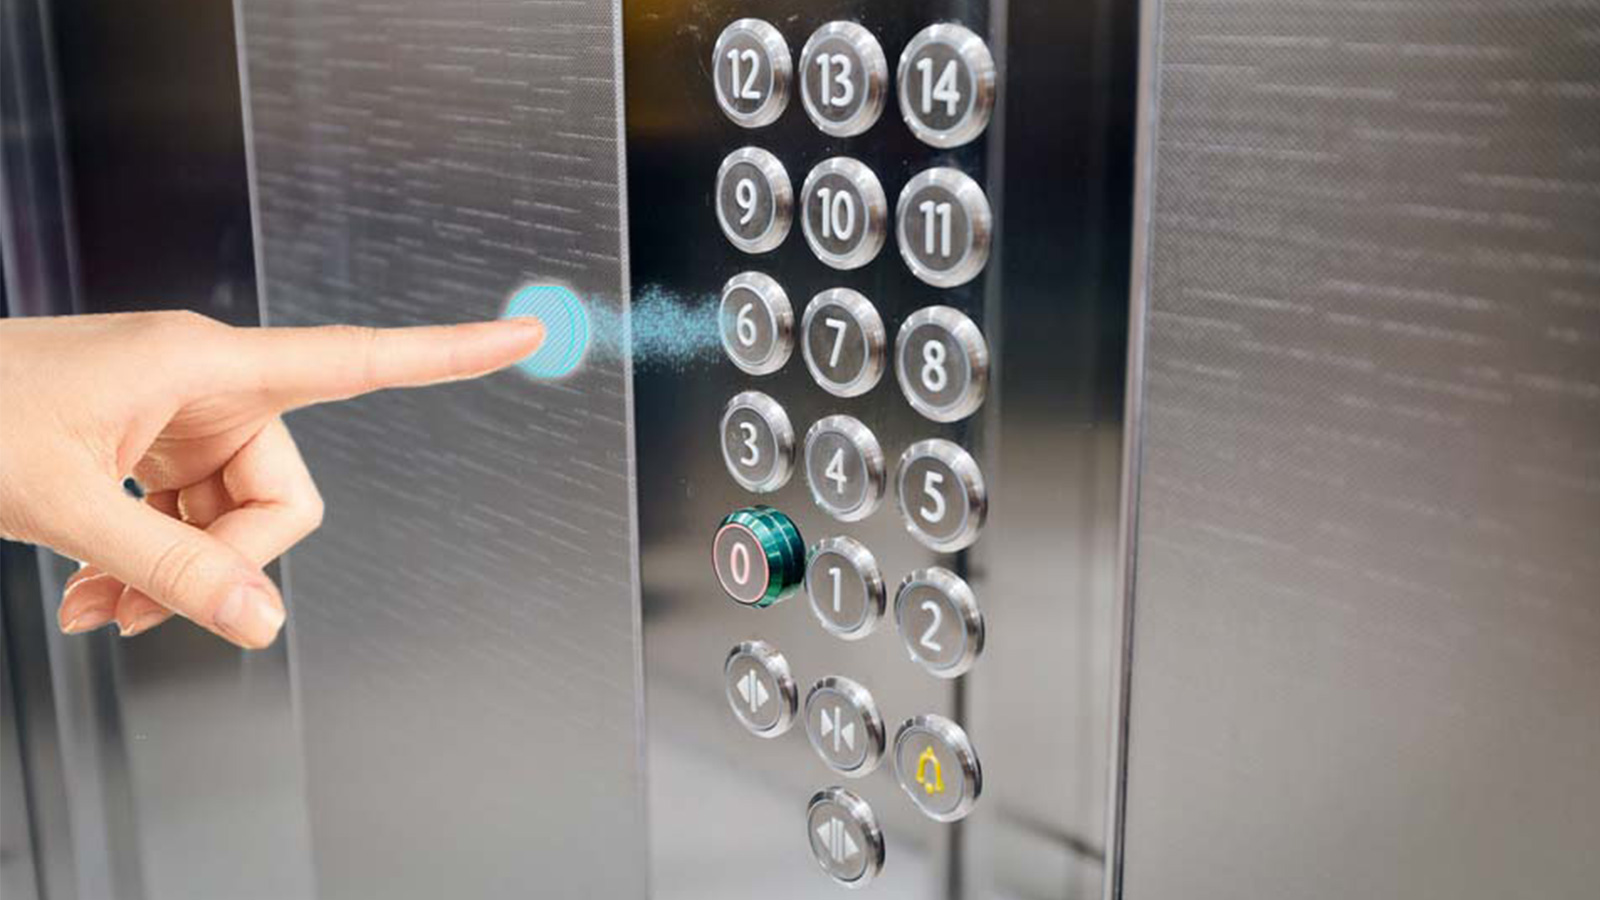 Touchless elevator button